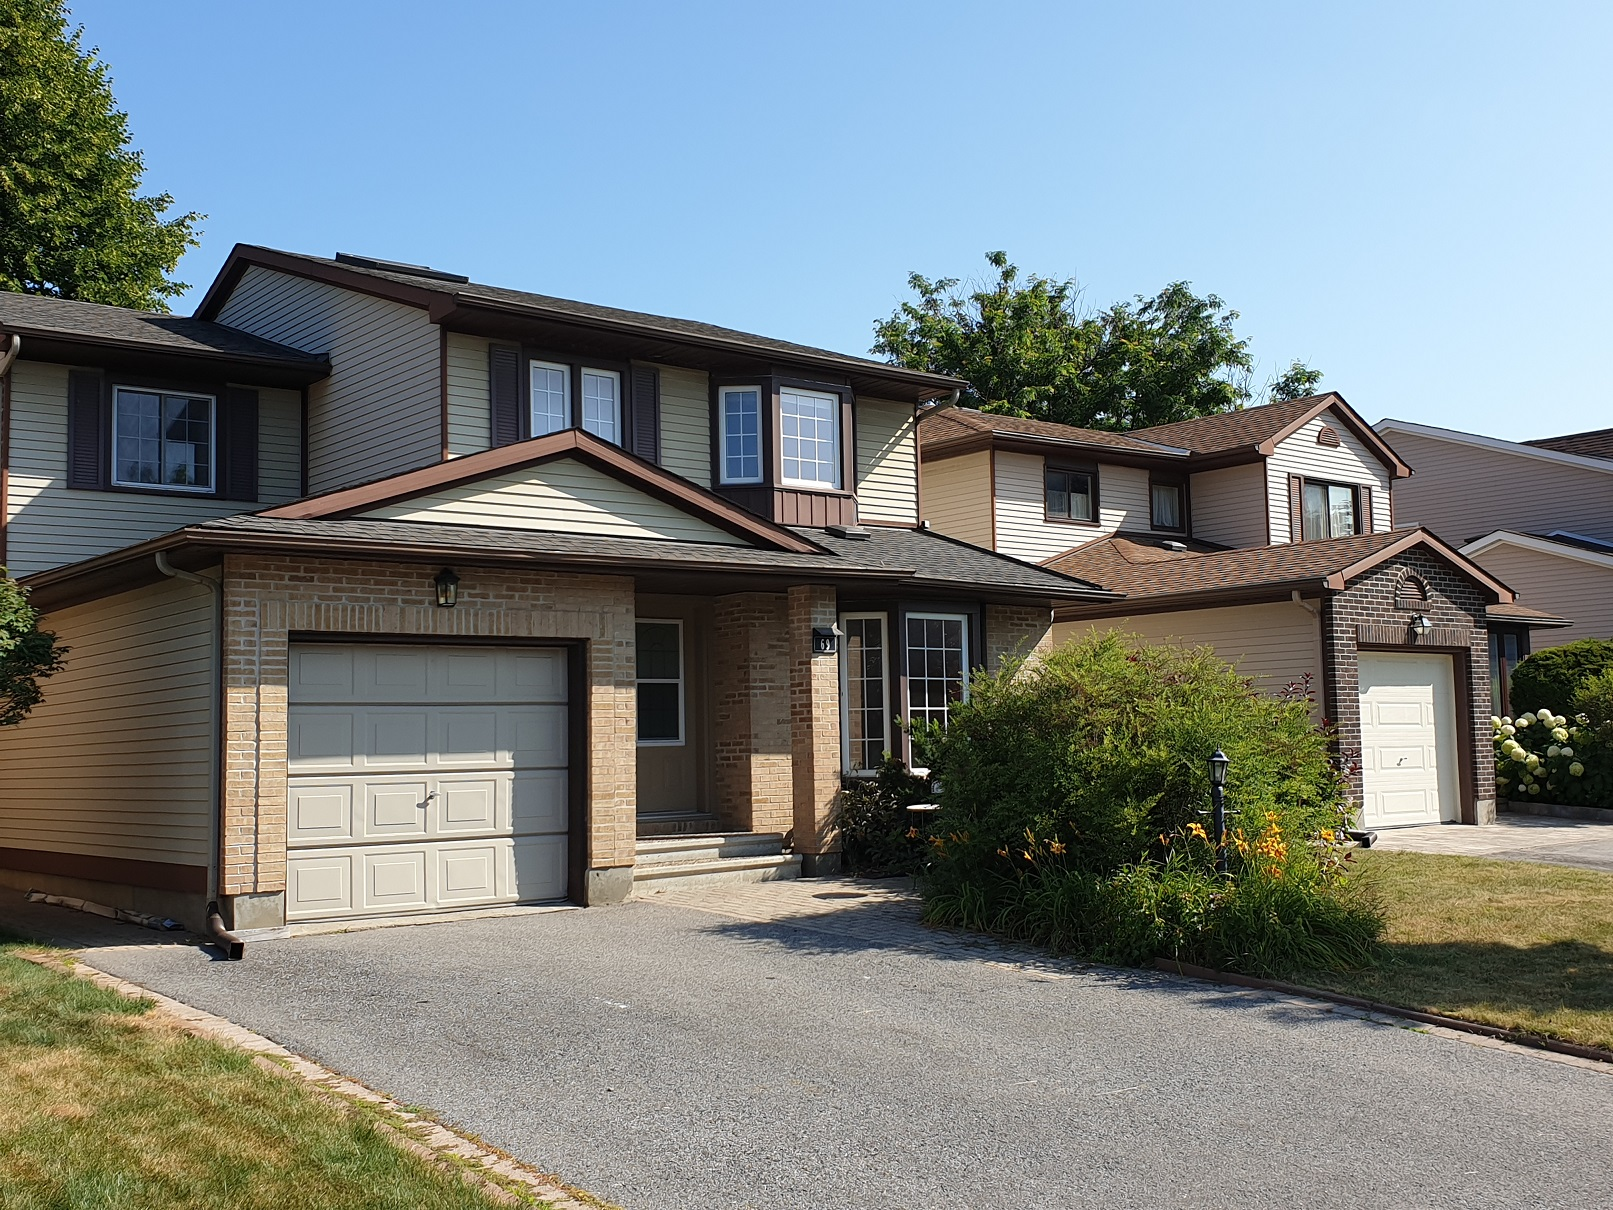 69 Pinetrail Cres - Wonderful 4 Bedroom Detached Home for RENT in popular Centrepointe!